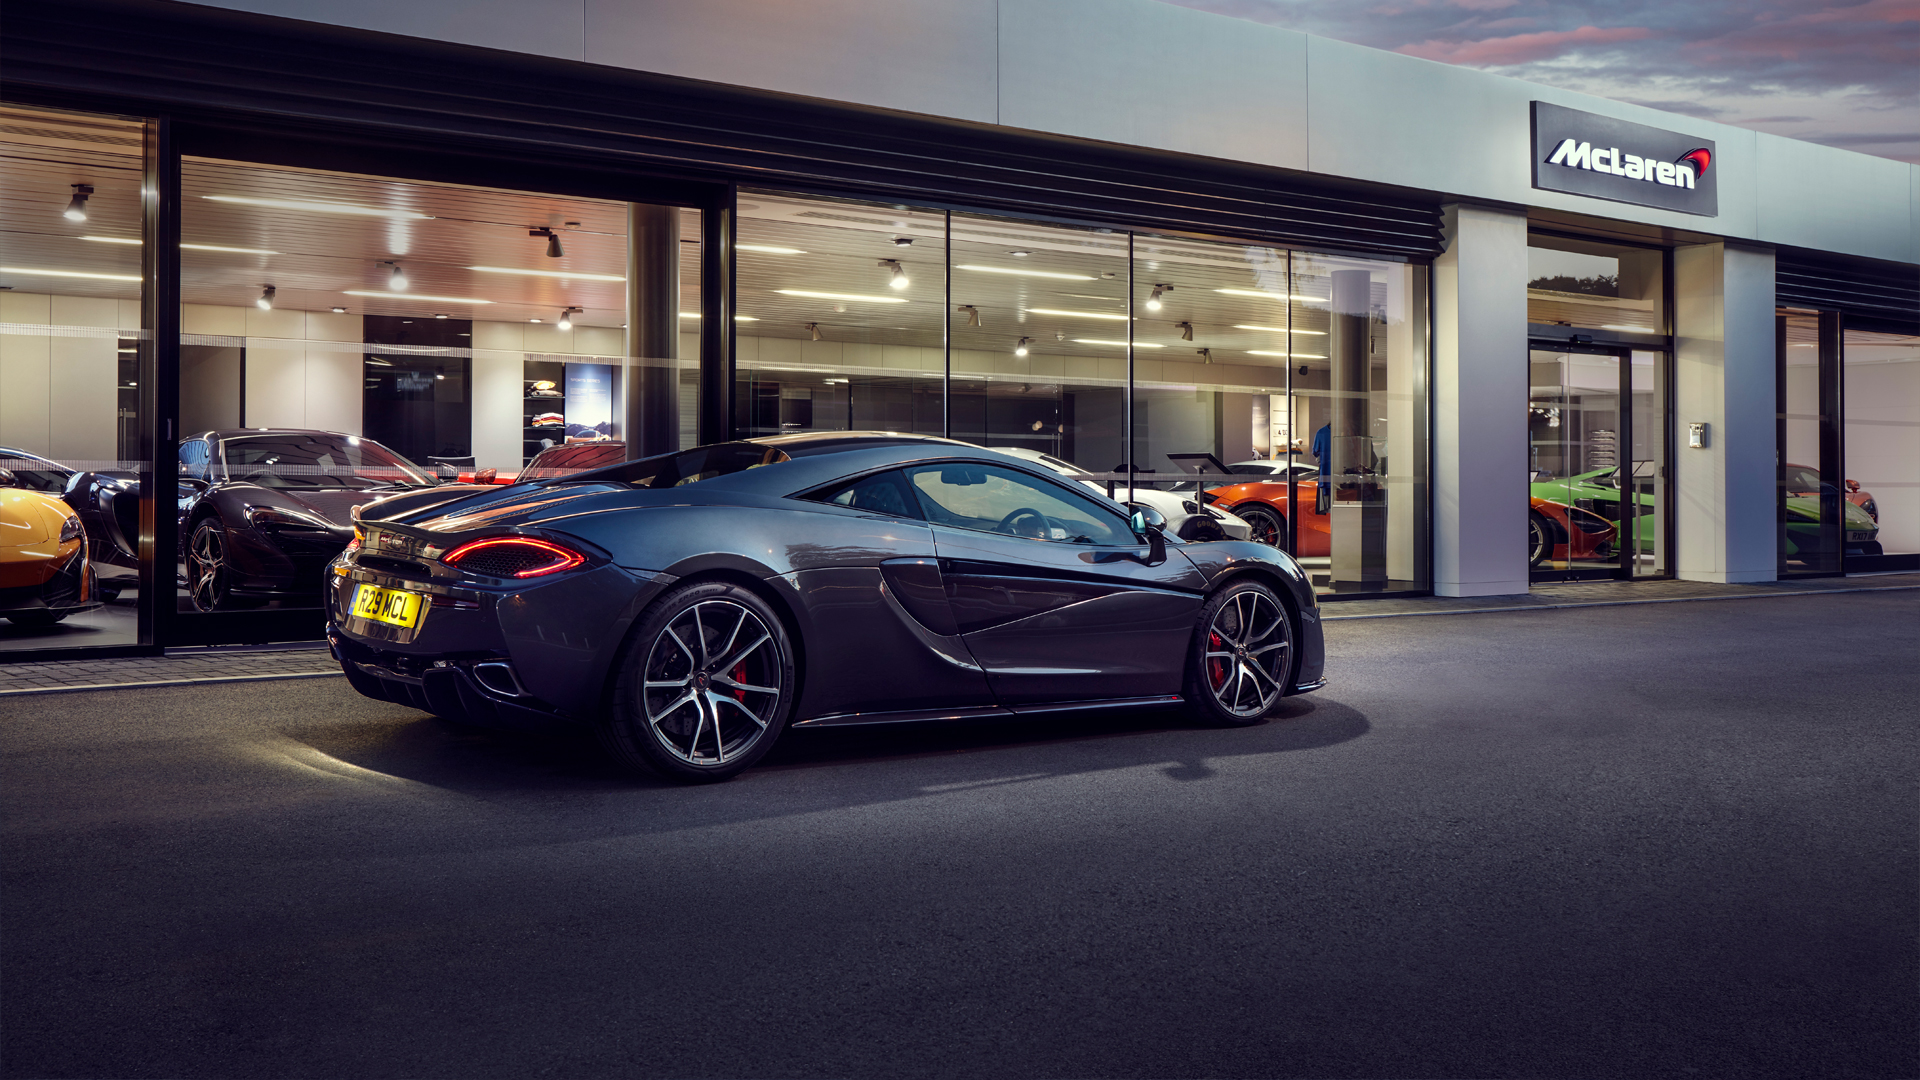 McLaren Service and Maintenance